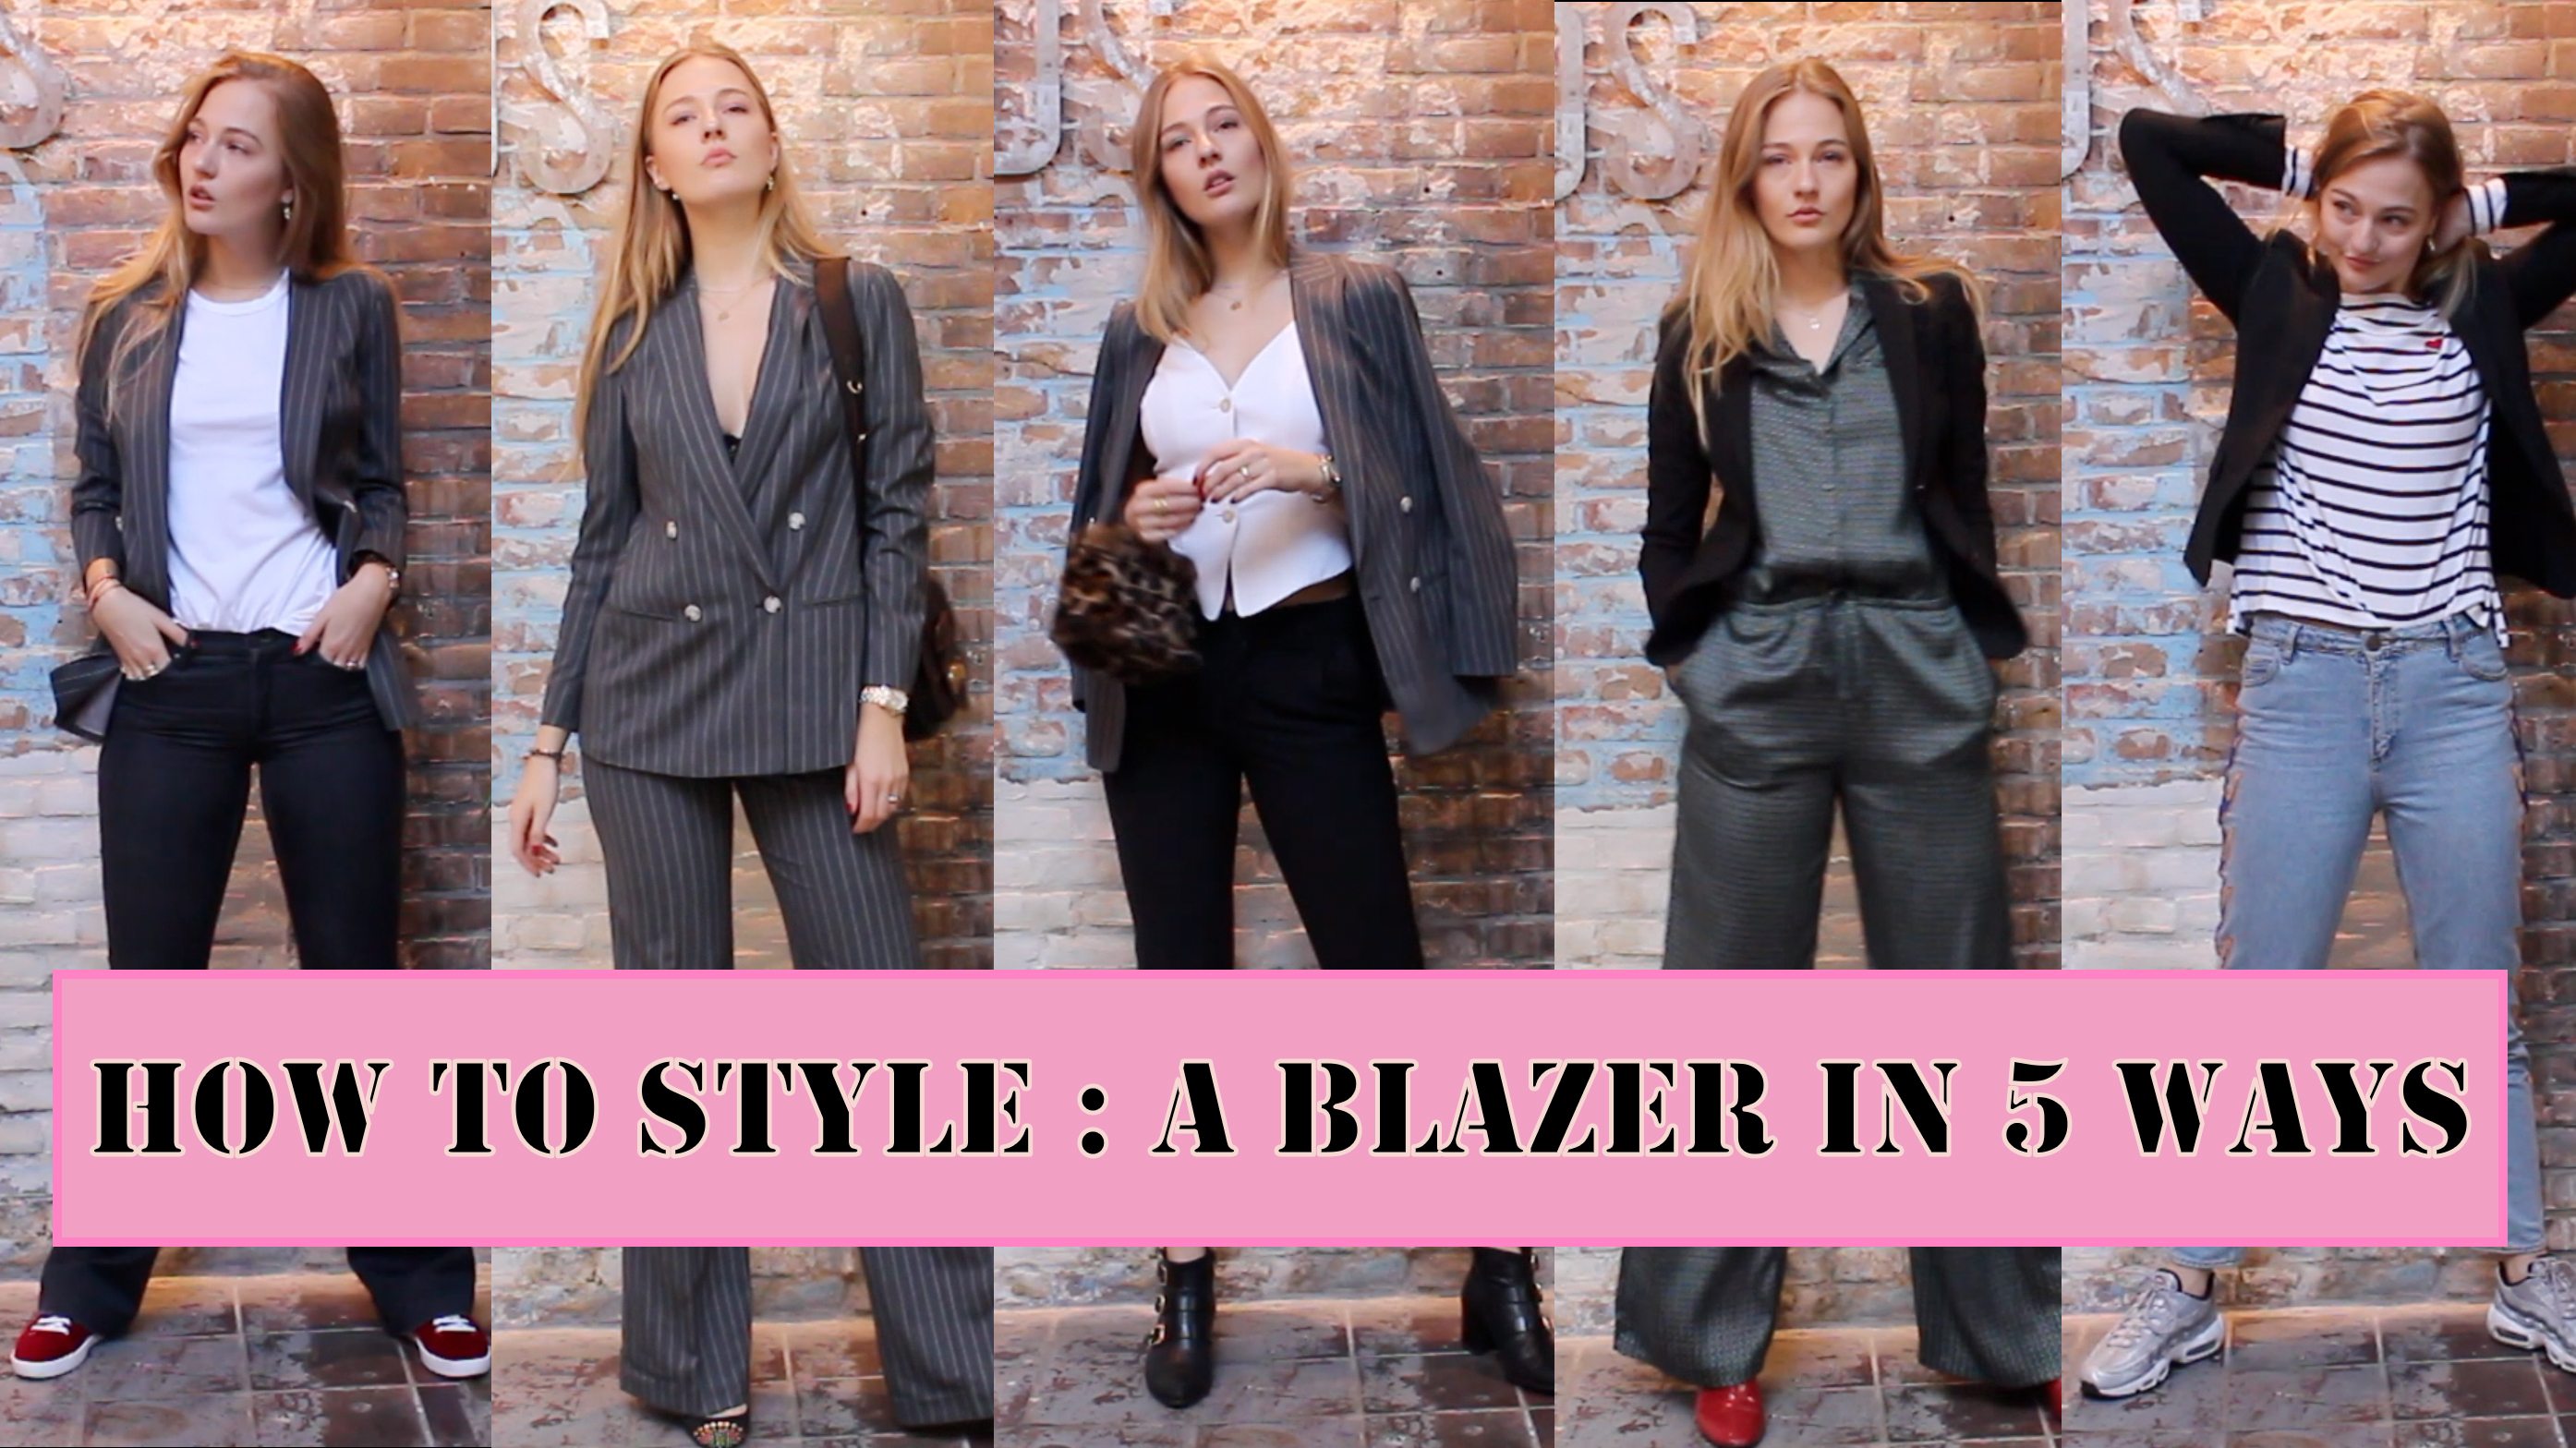 HOW TO STYLE : A BLAZER IN 5 WAYS